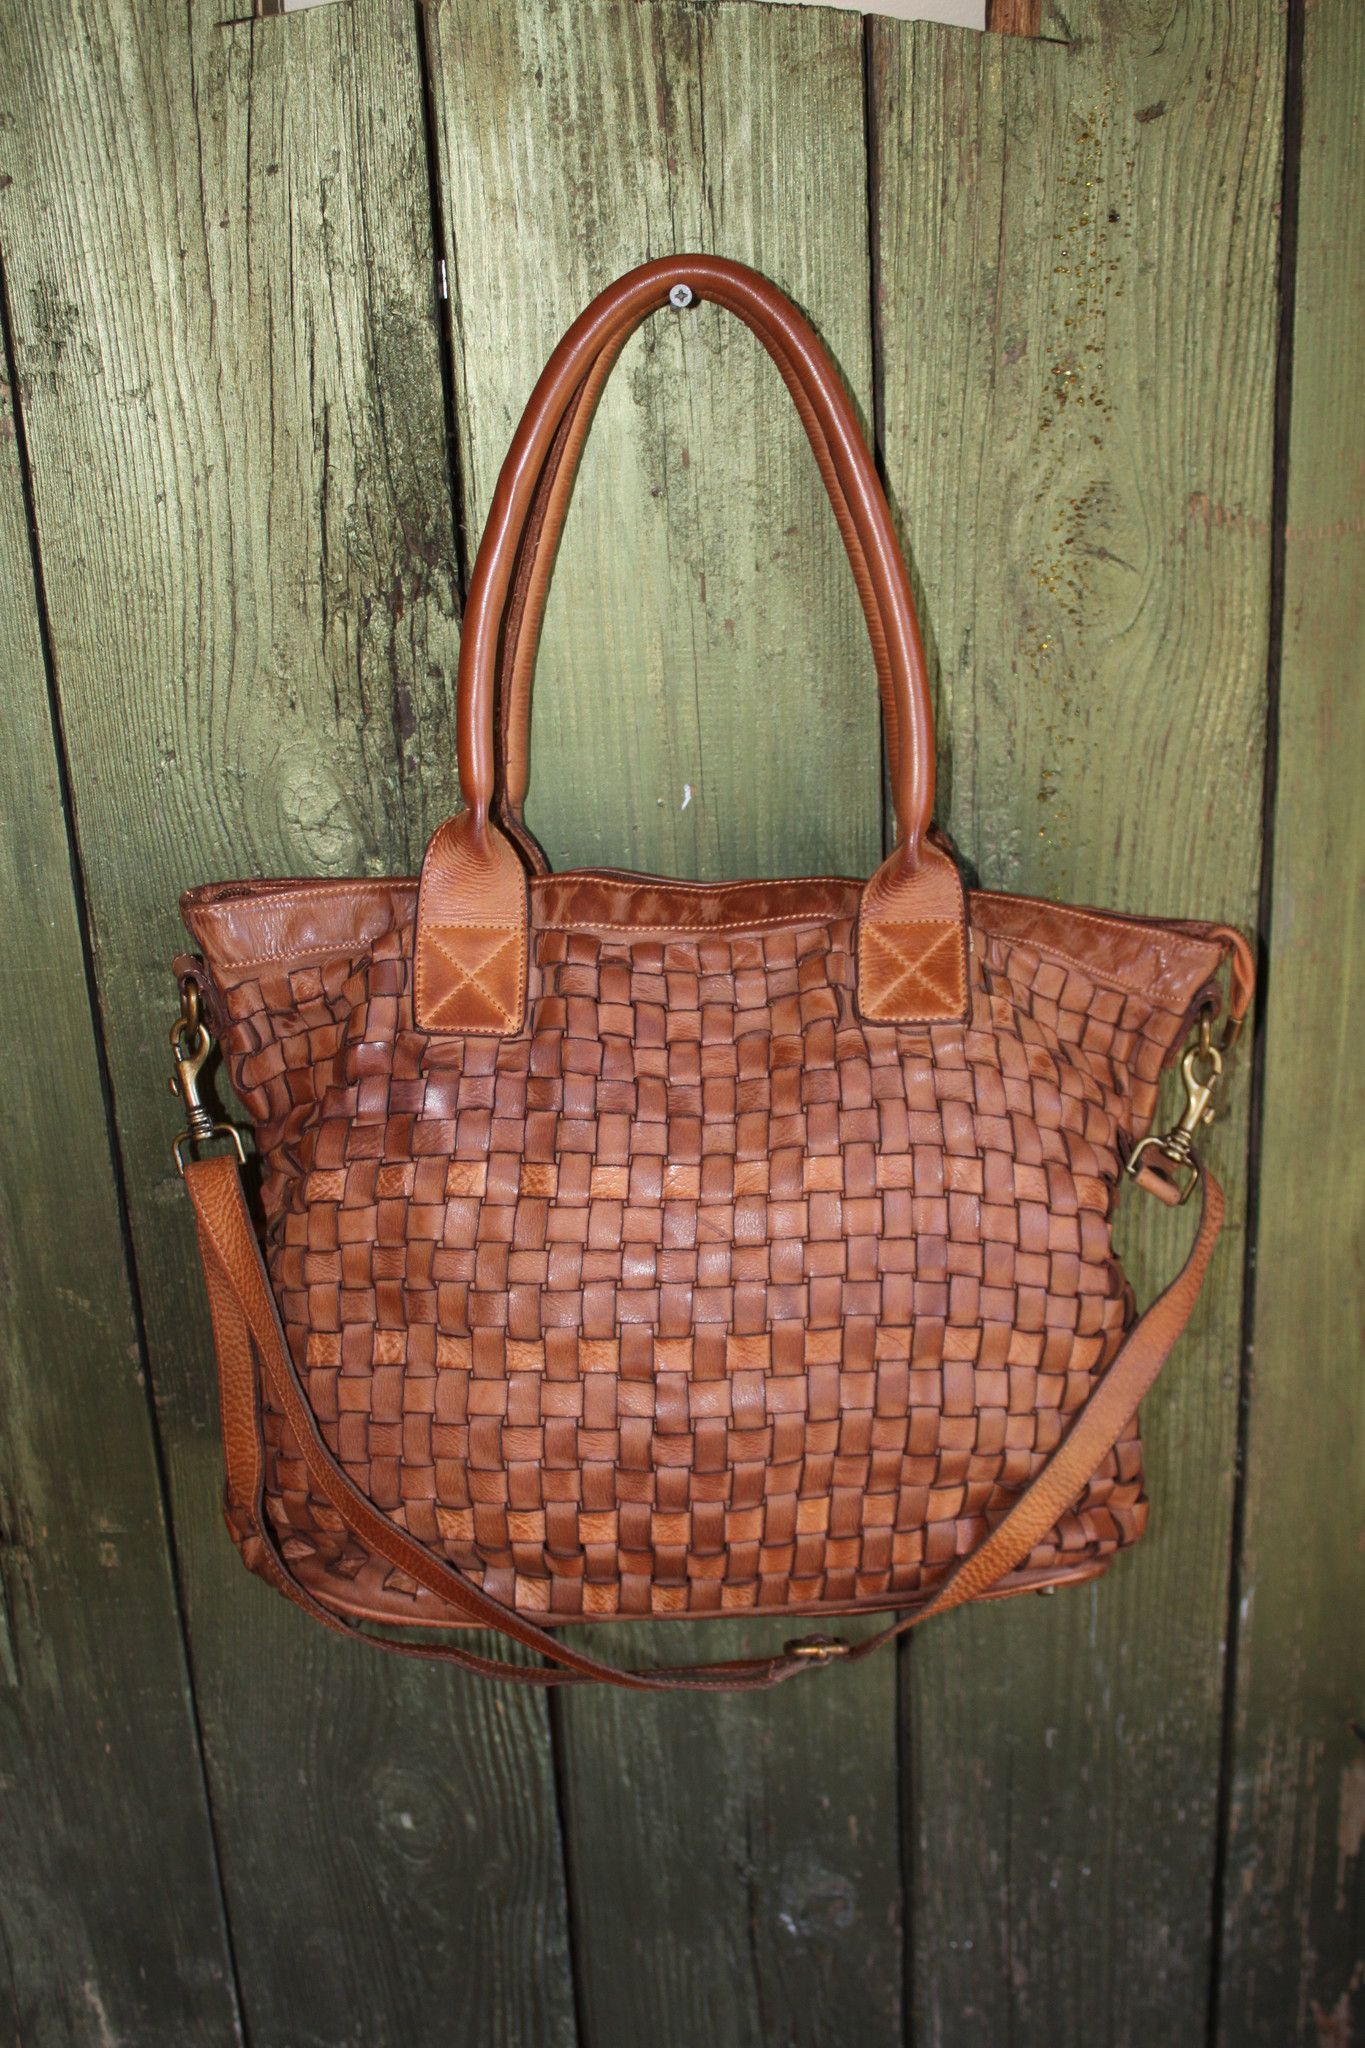 a8a2d7b970 Soft Camel Color Italian Woven Leather Handbag